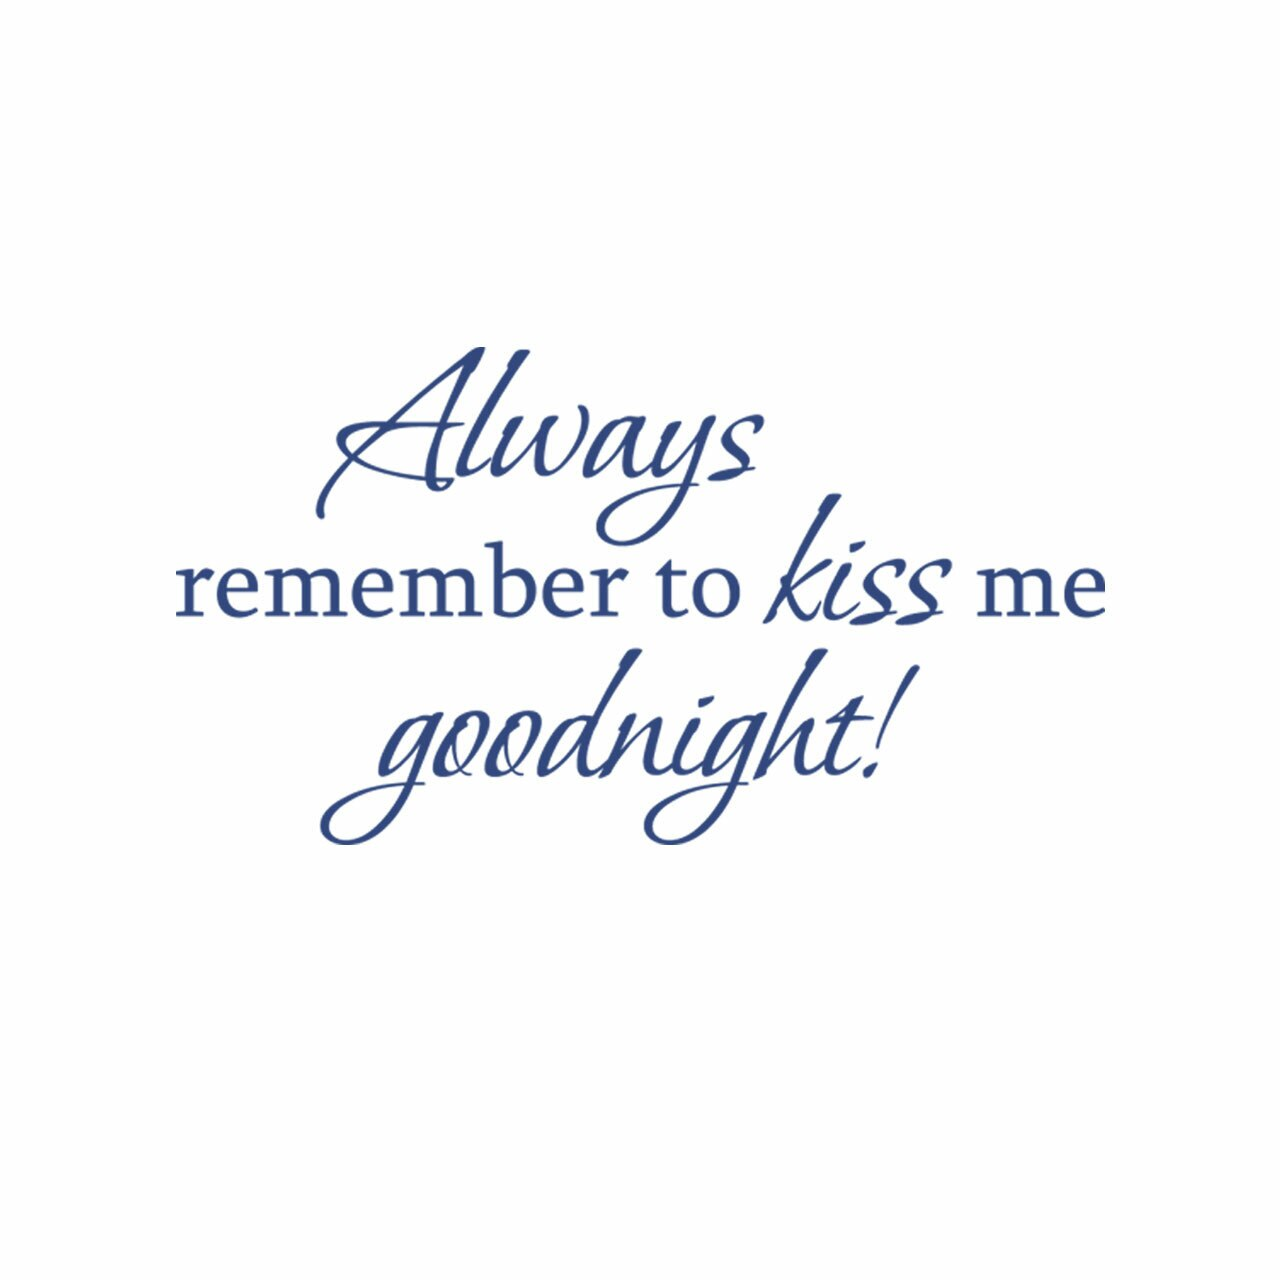 Always remember to kiss me goodnight! written in blue on a white background